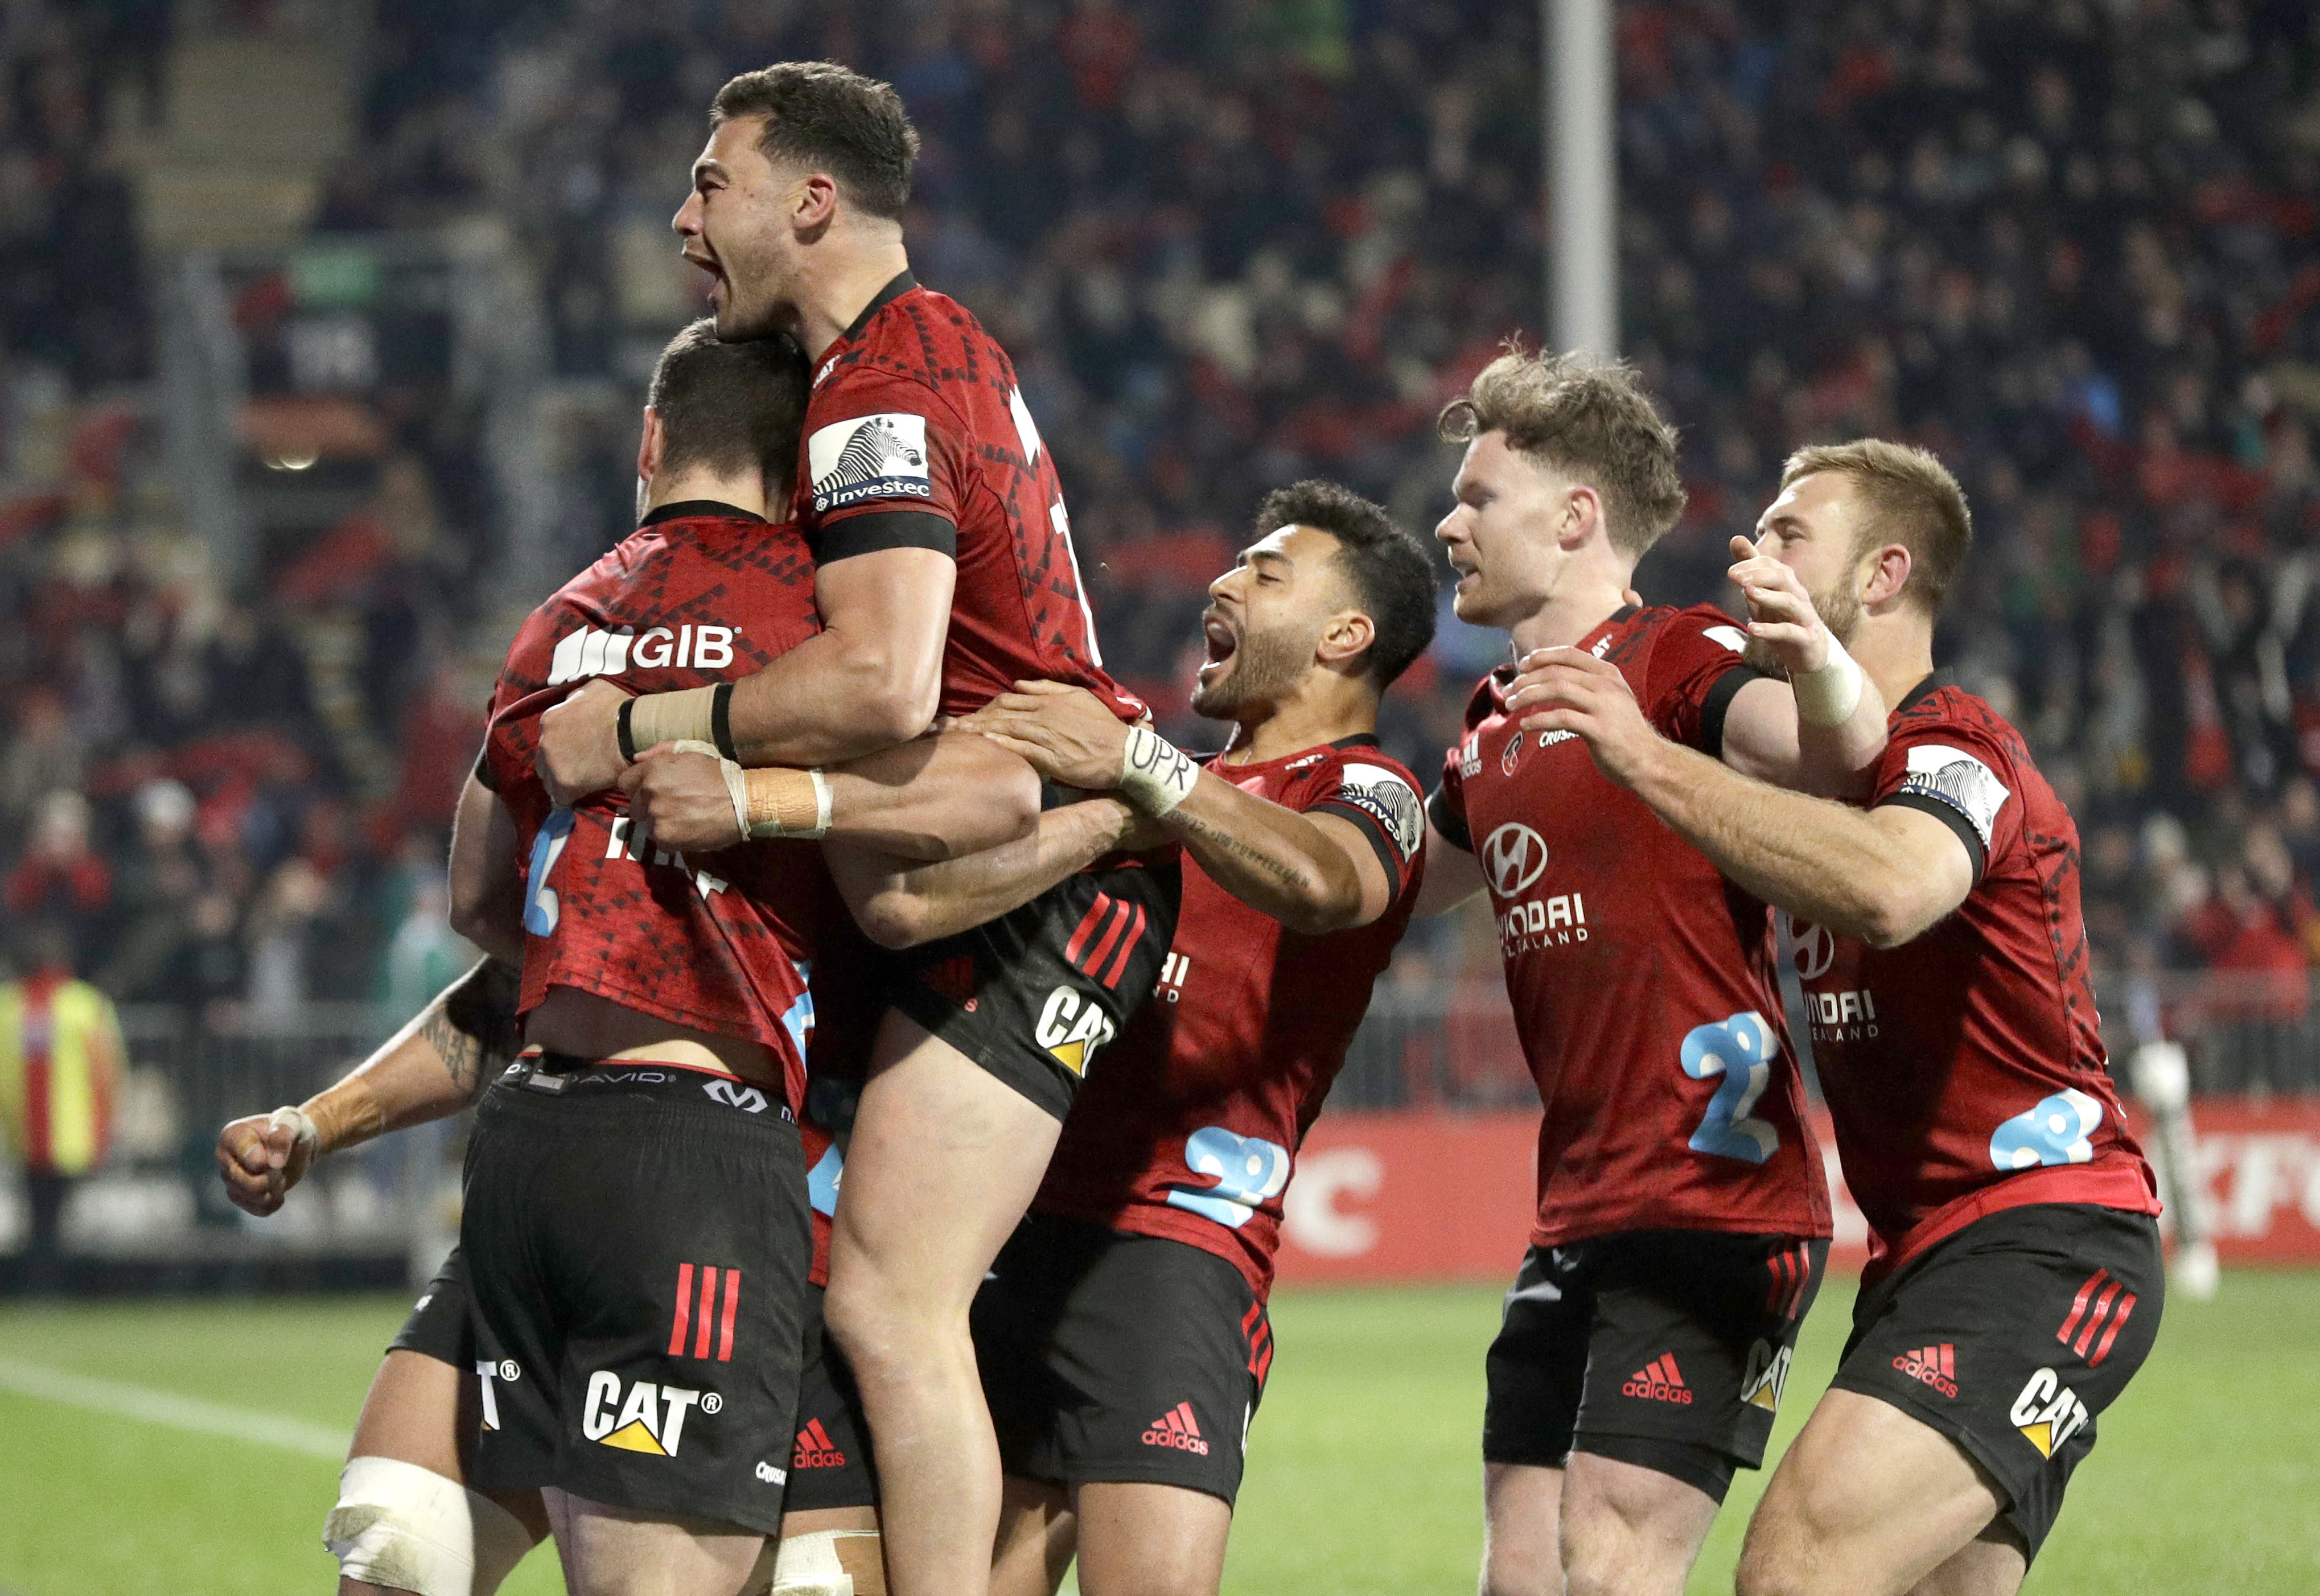 Crusaders Will Jordan, left, is congratulated by teammates after scoring his team's match winning try during the Super Rugby Aotearoa rugby game between the Crusaders and the Blues in Christchurch, New Zealand, Saturday, July 11, 2020. (AP Photo/Mark Baker)